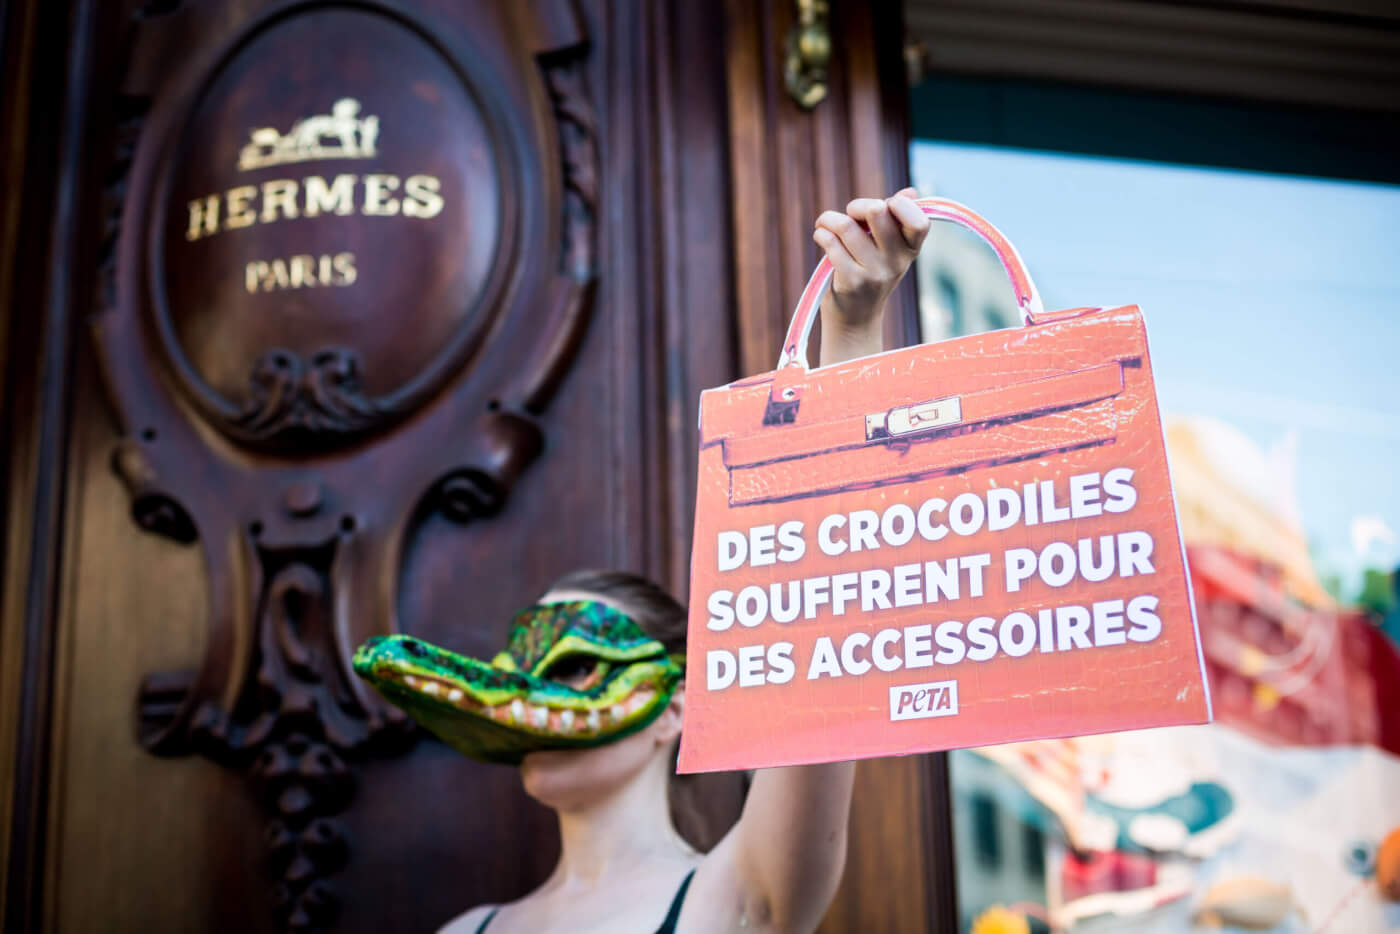 A protester wearing a crocodile mask outside Hermès in Paris.